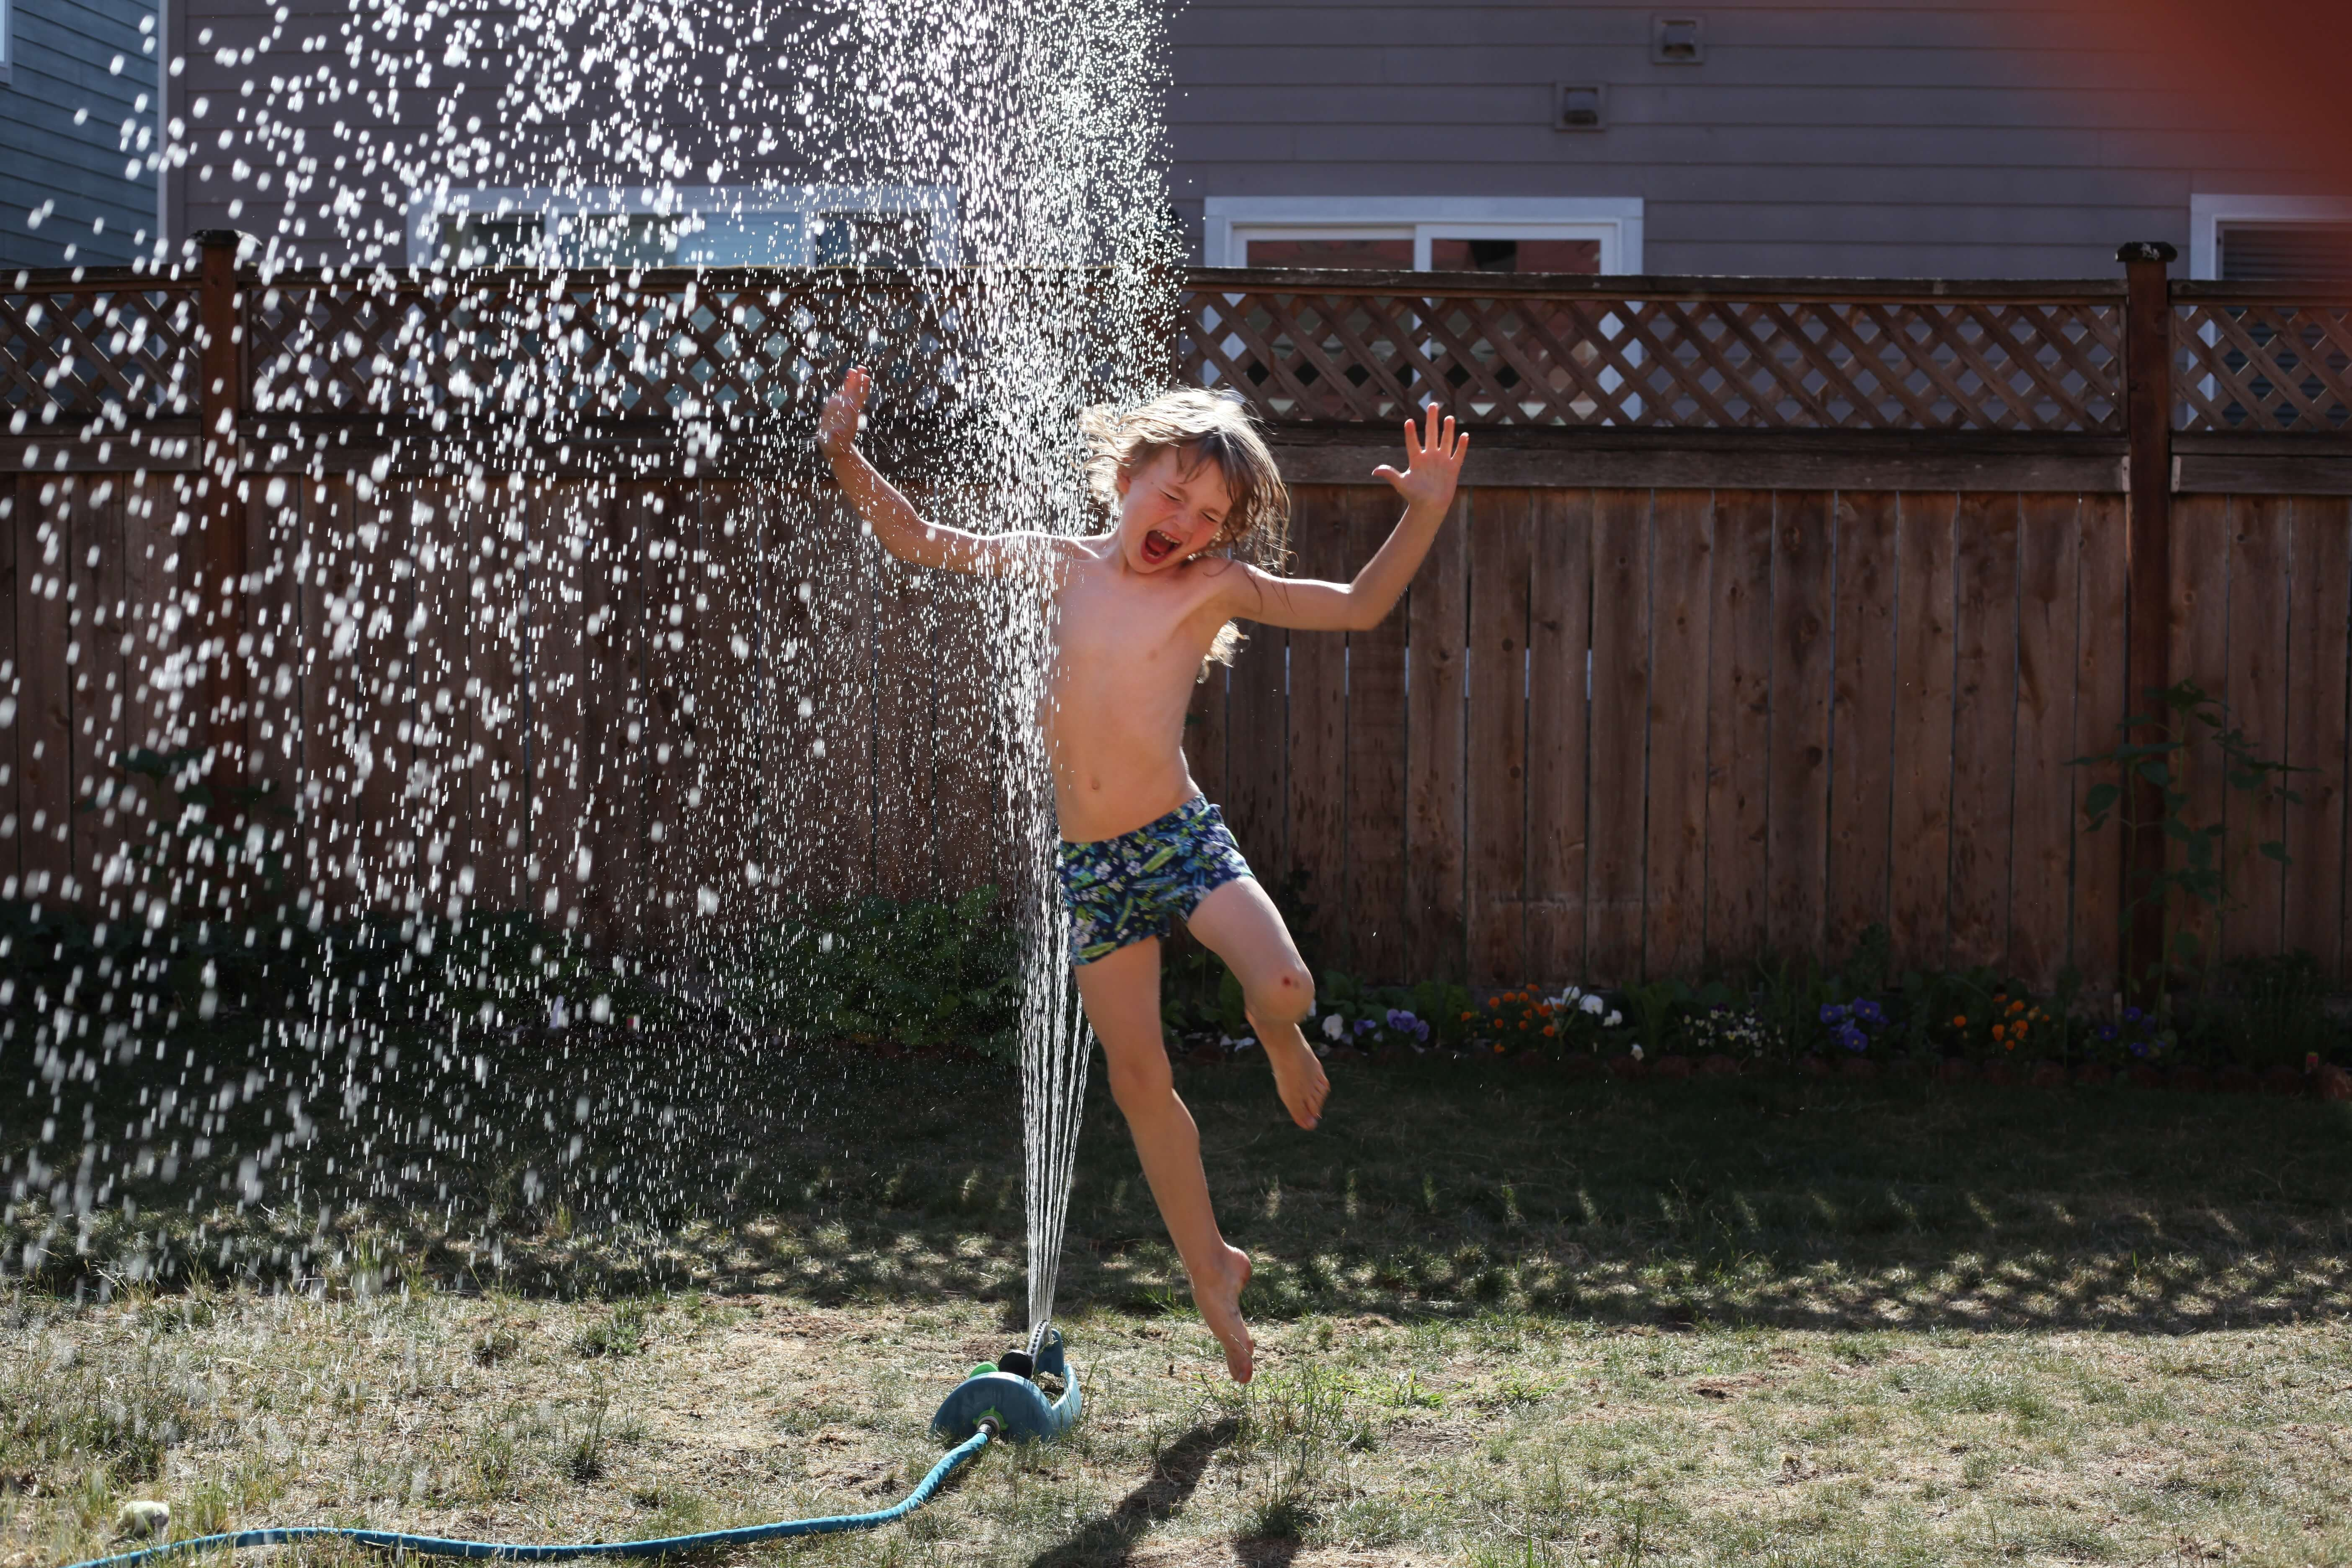 boy playing in the sprinkler, activities for last days of summer